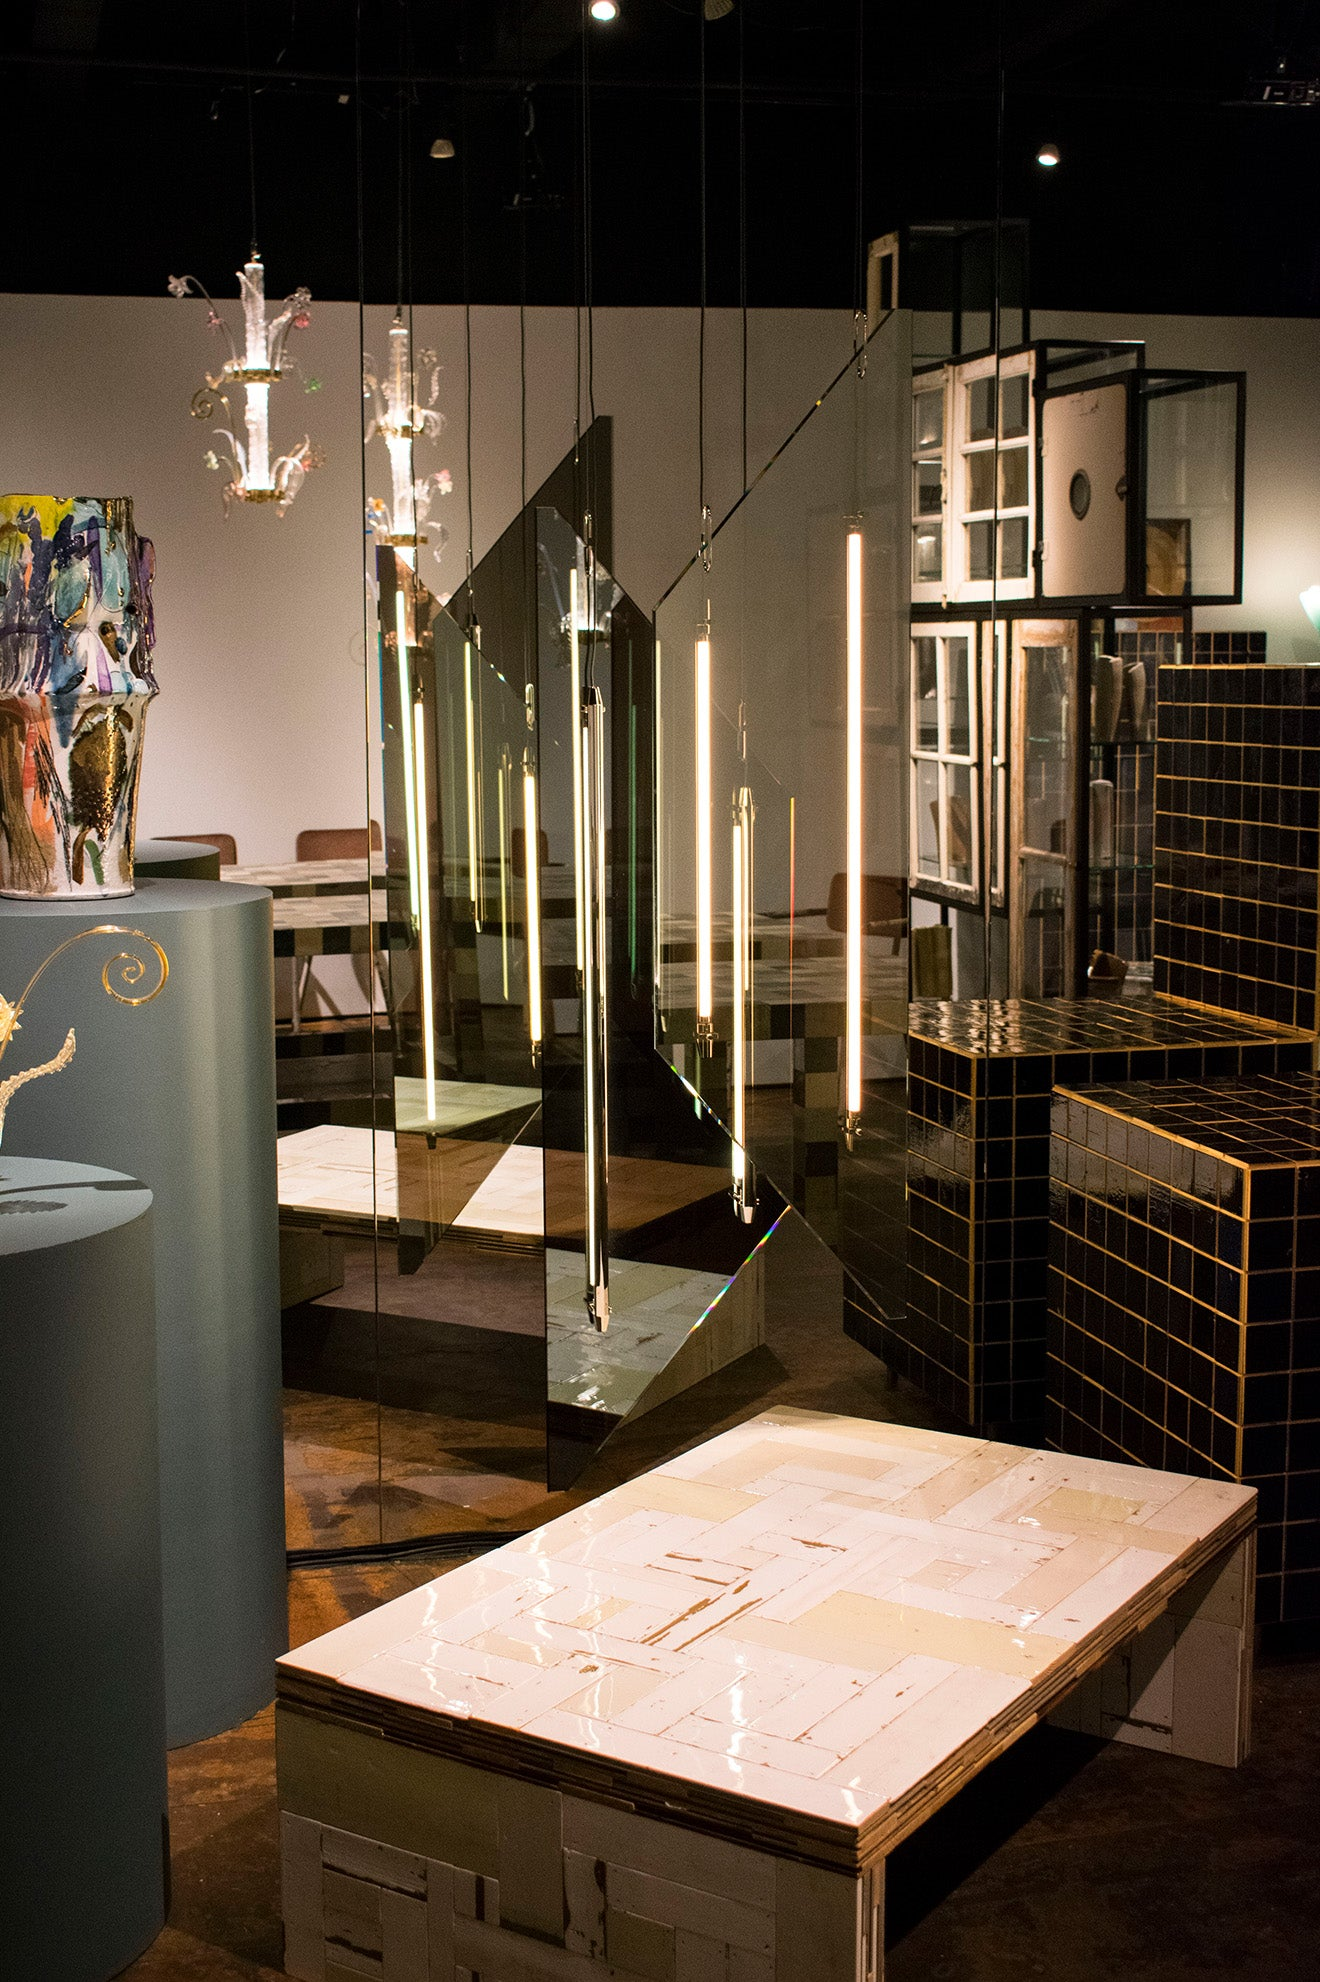 The Future Perfect Furniture Designs and Showroom New York